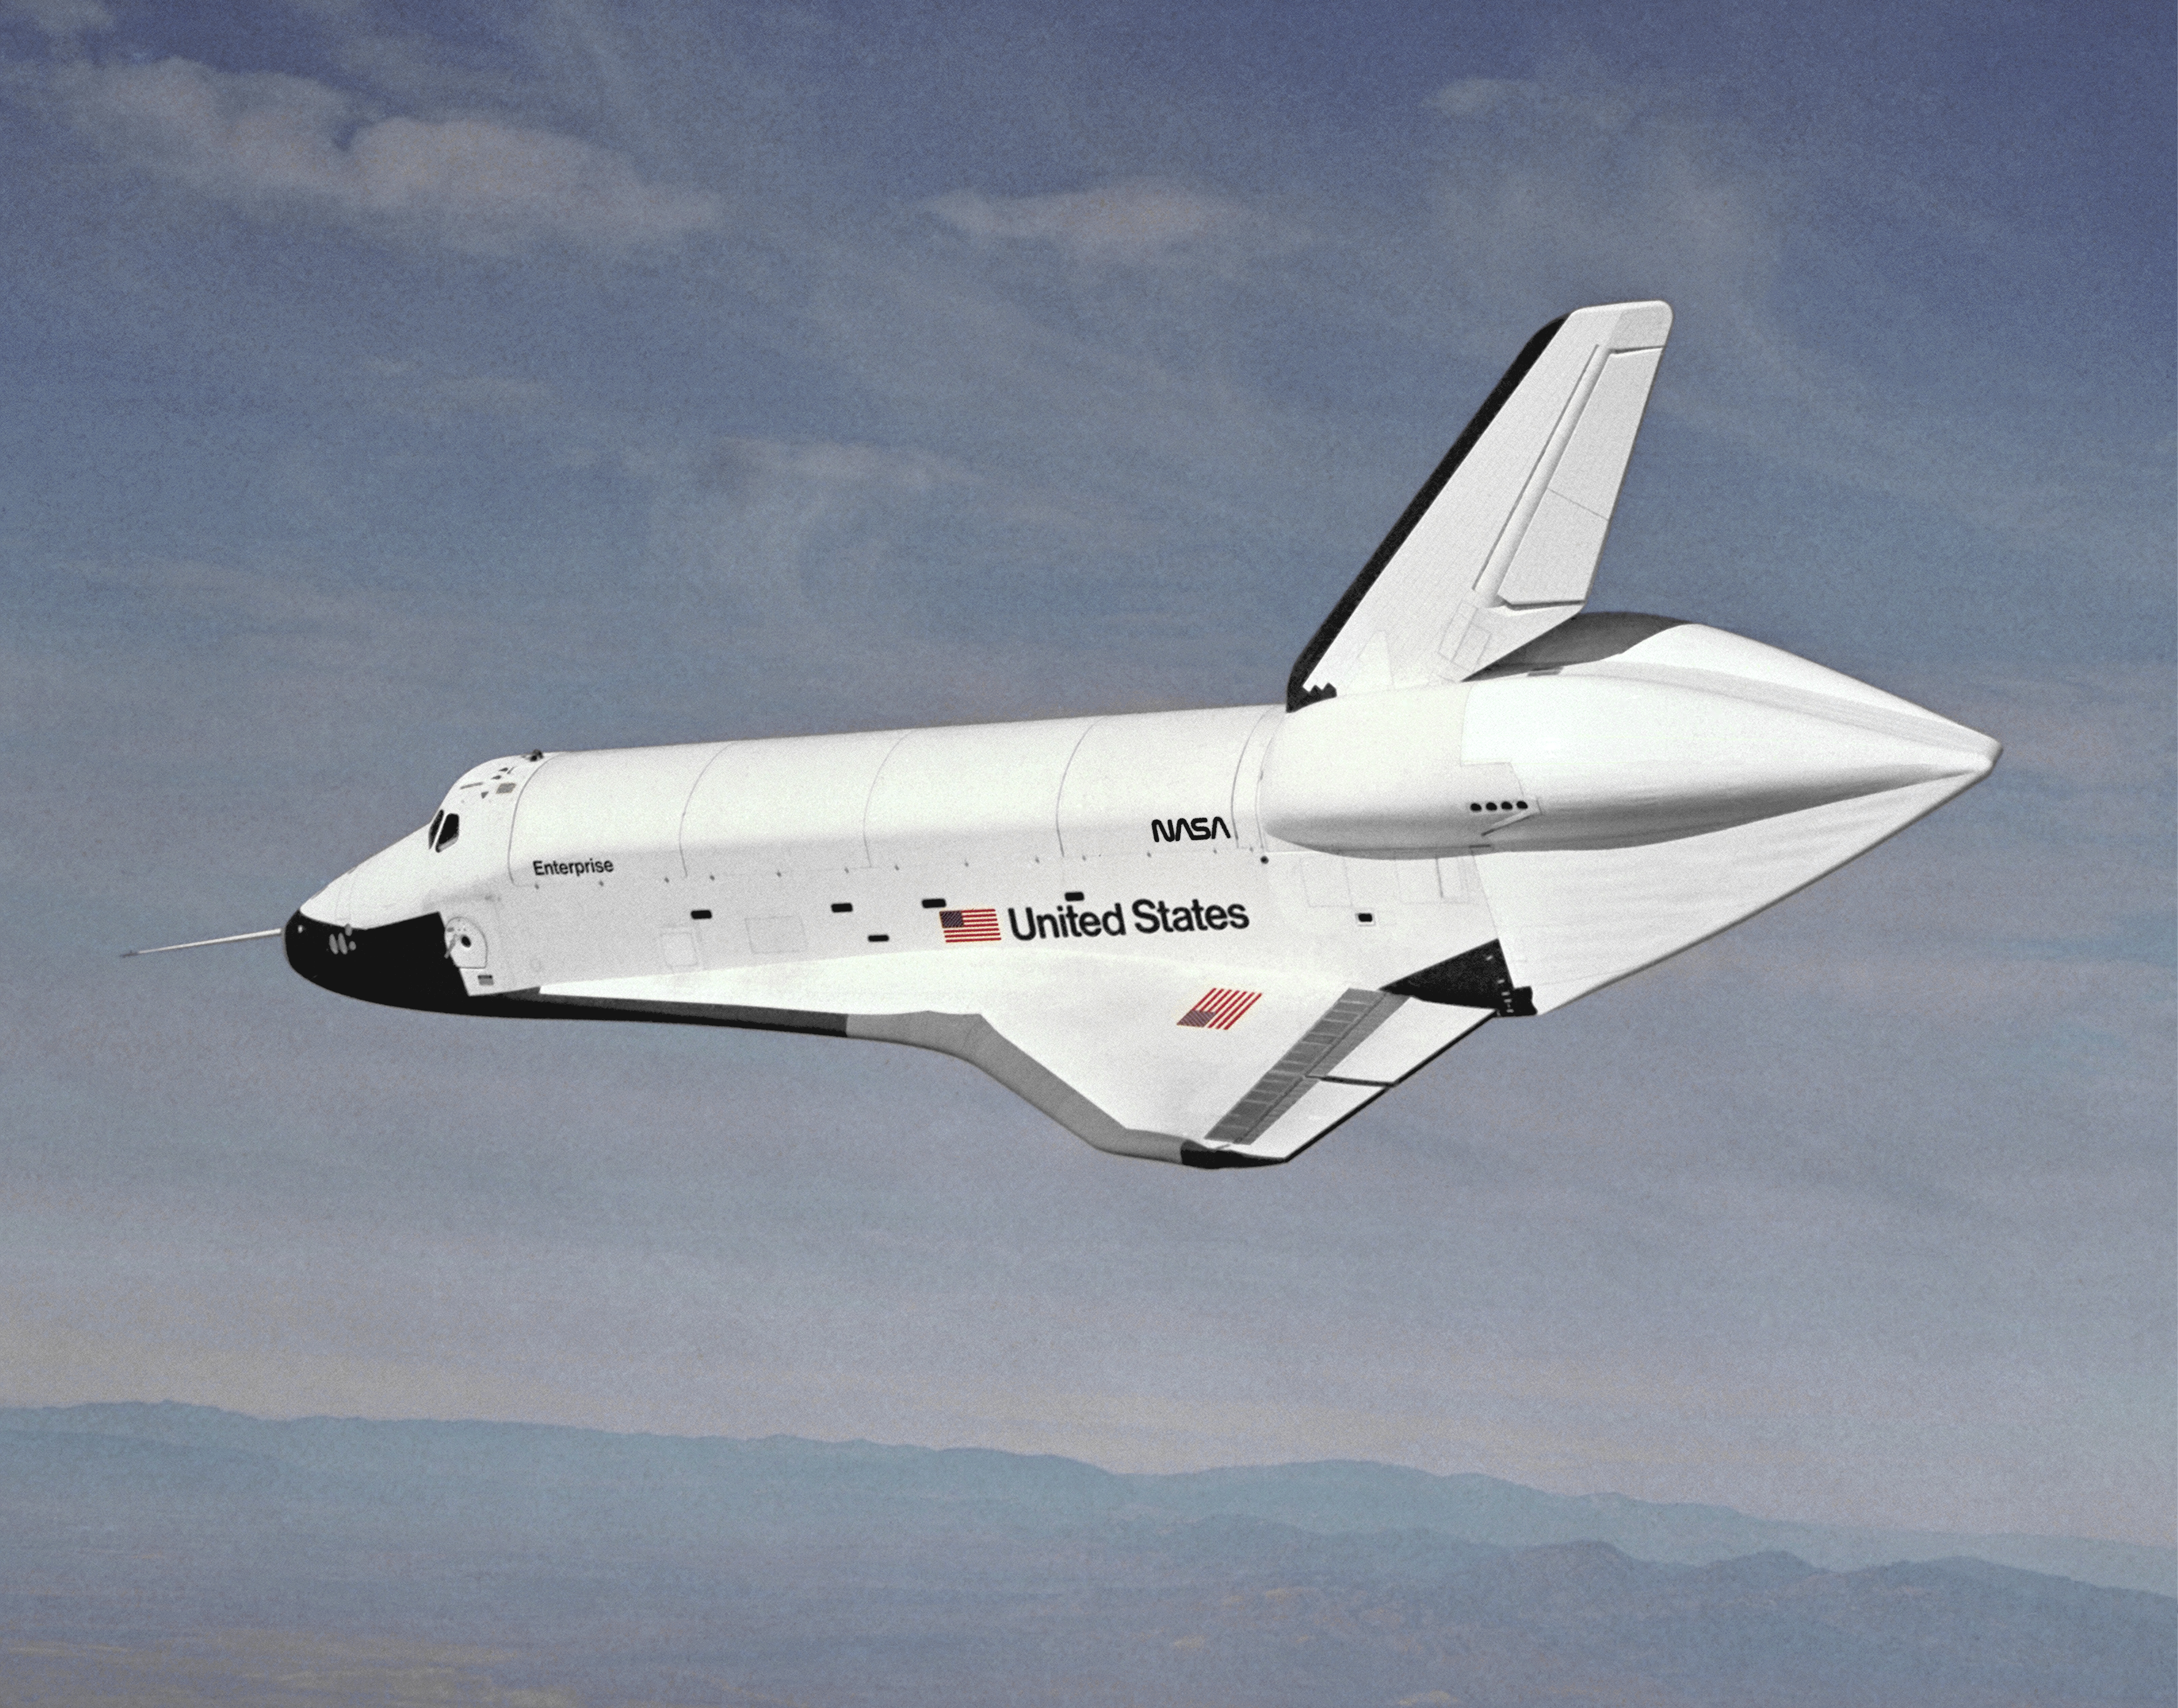 space shuttle first flight - photo #34